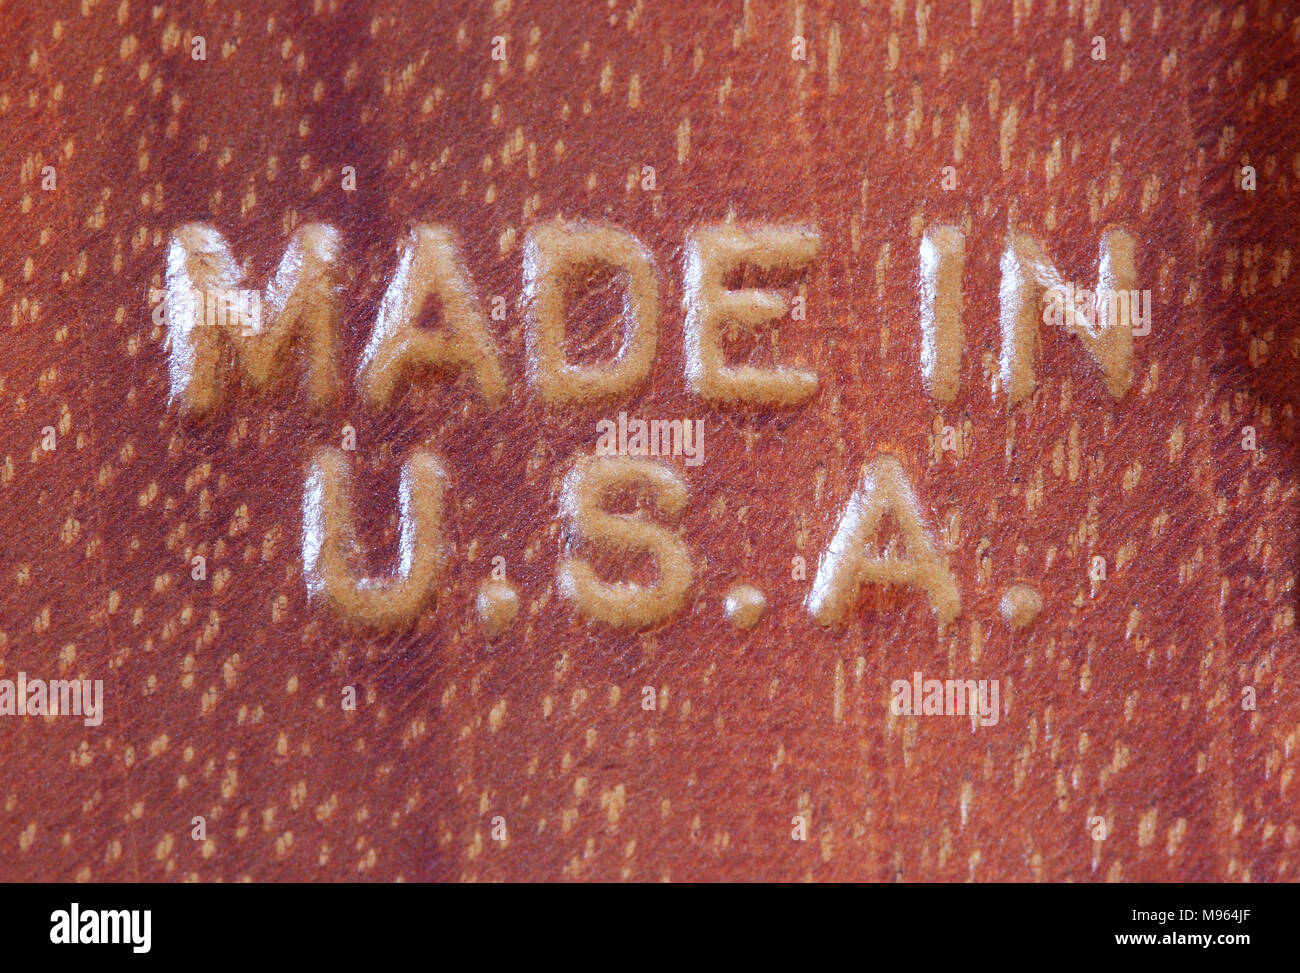 Made in U.S.A. routed into mahogany wood. - Stock Image